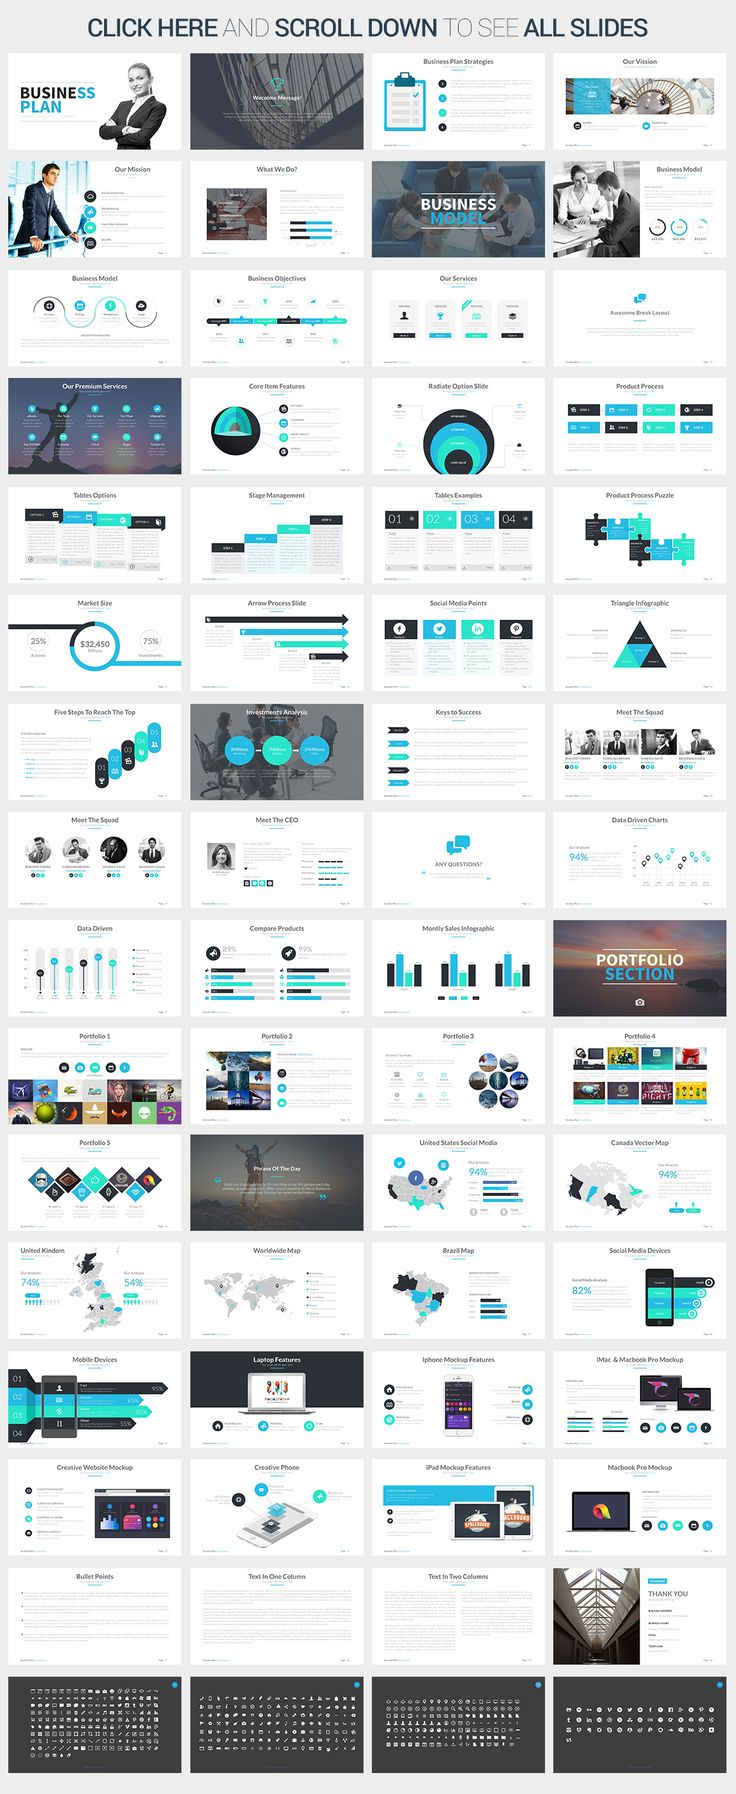 business infographic : business plan google slides template by